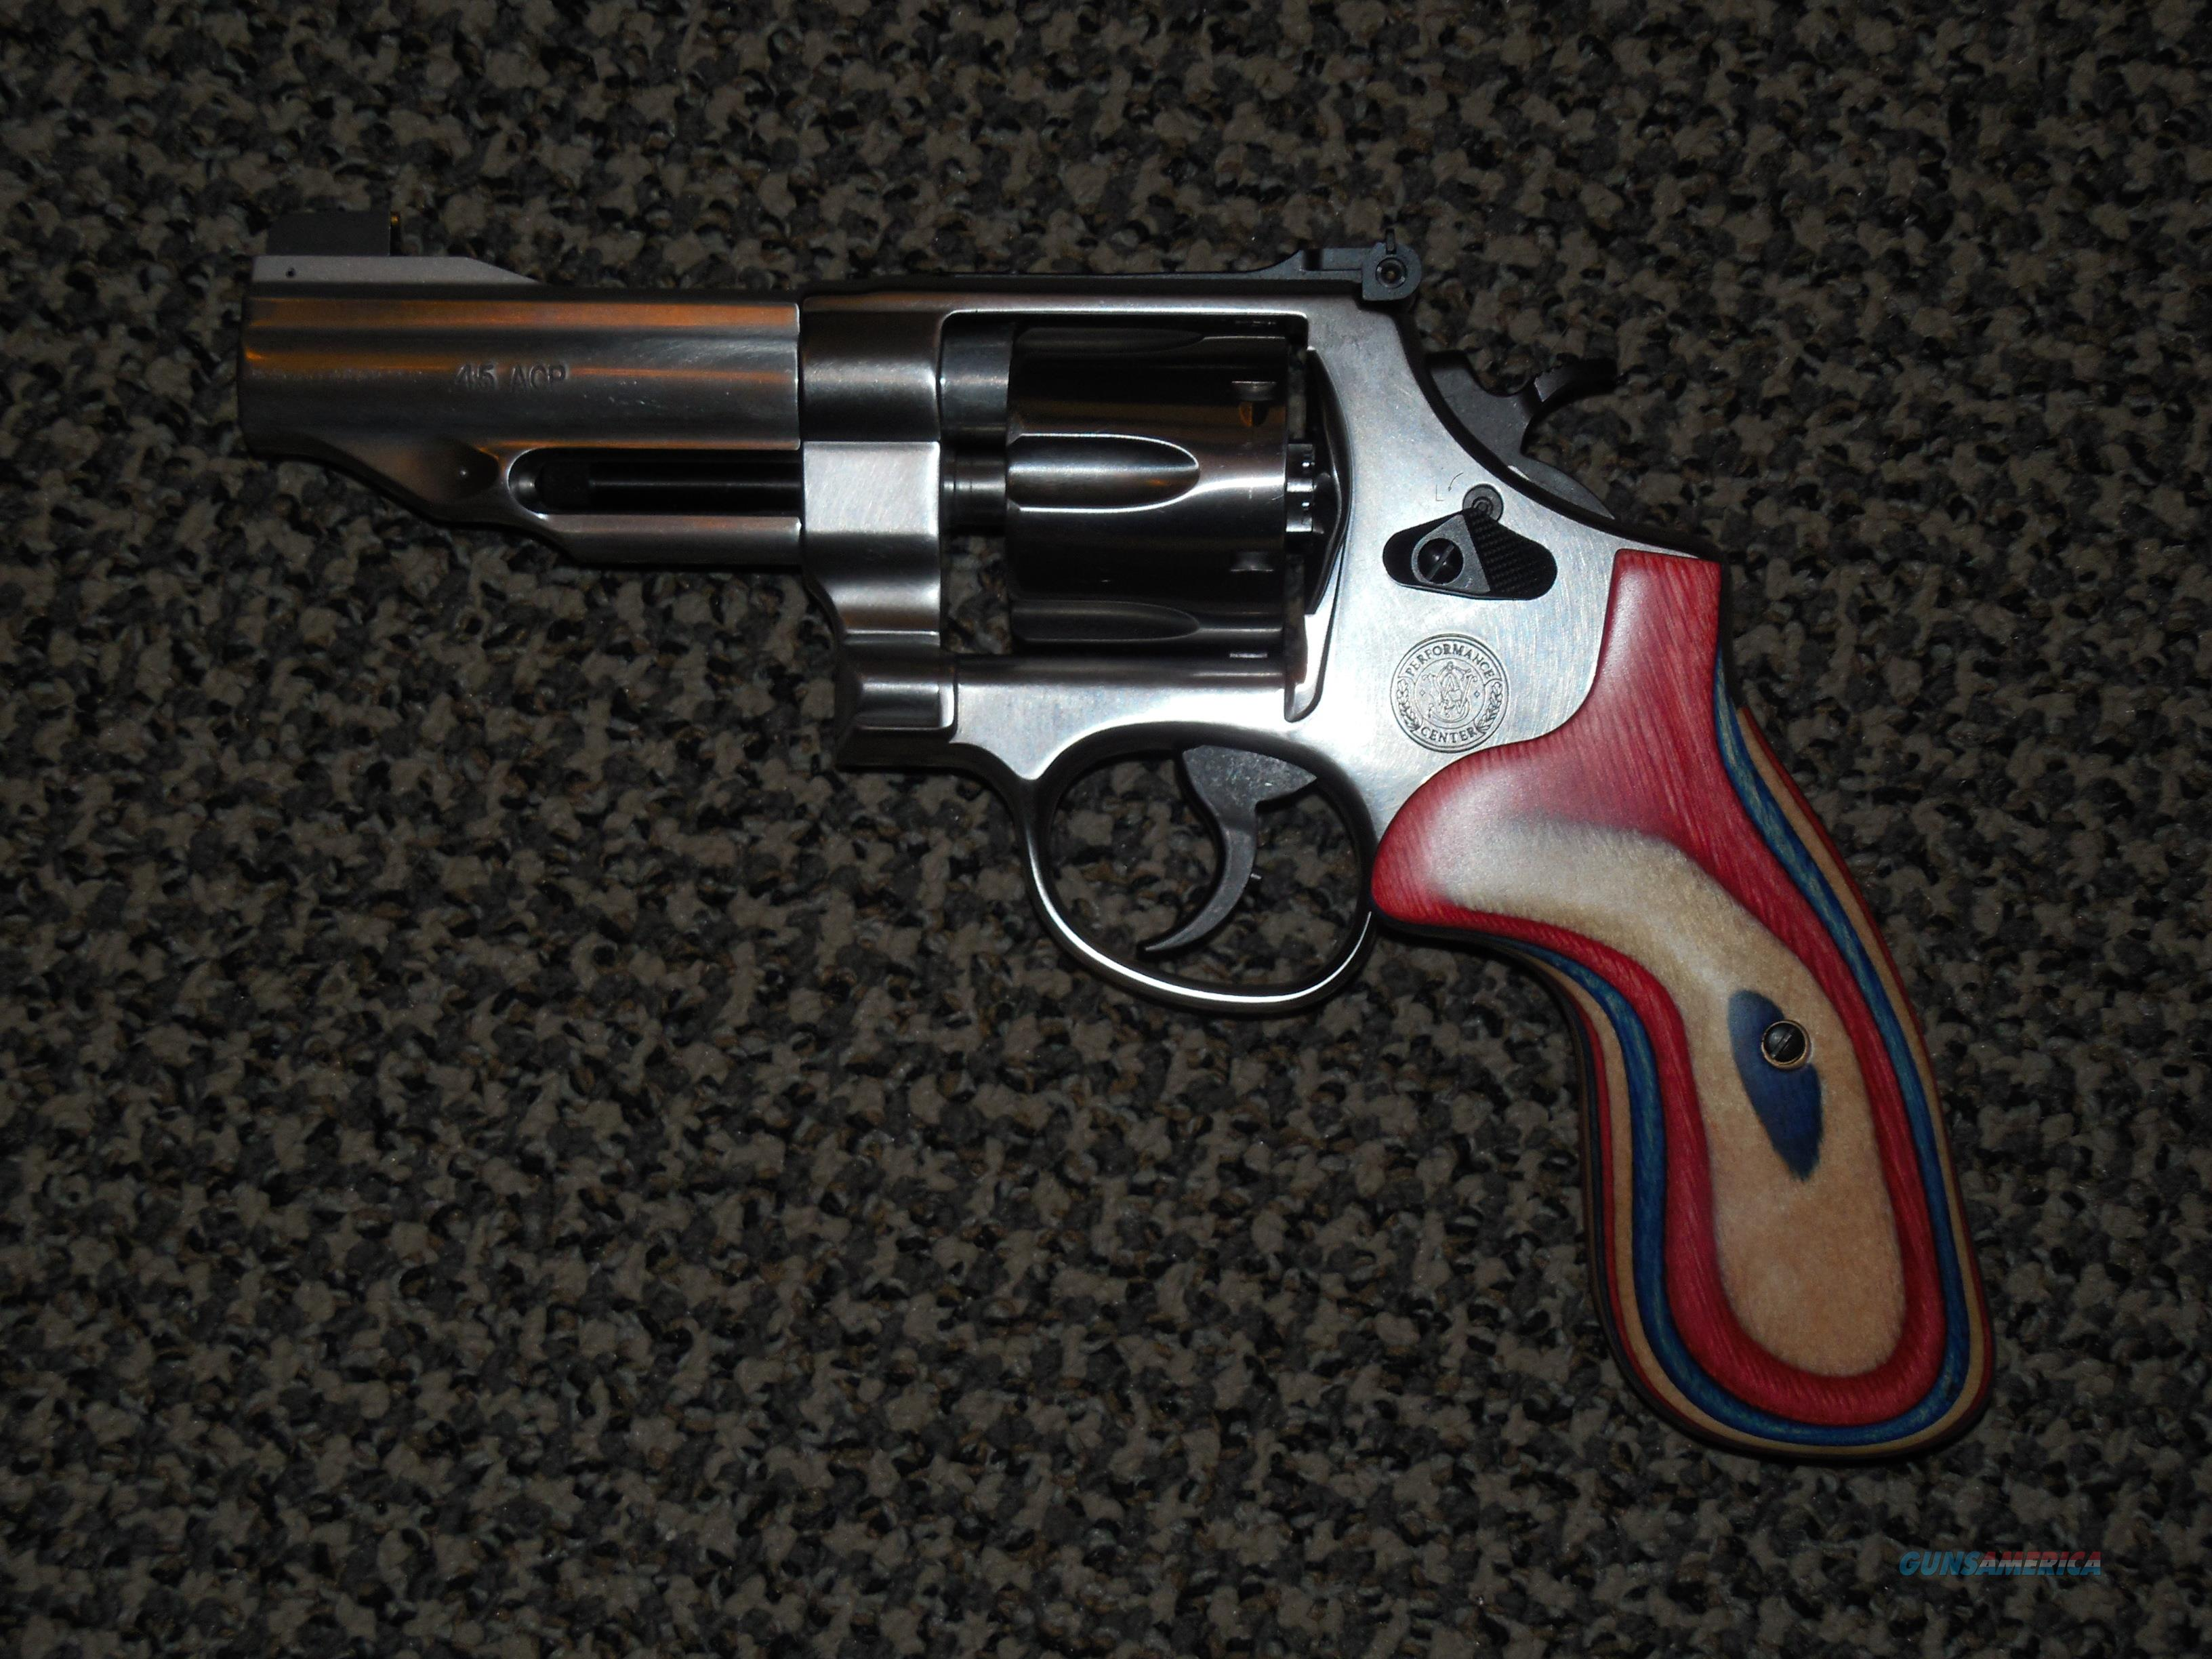 S&W MODEL 625 PERFORMANCE CENTER IN .45 ACP for sale